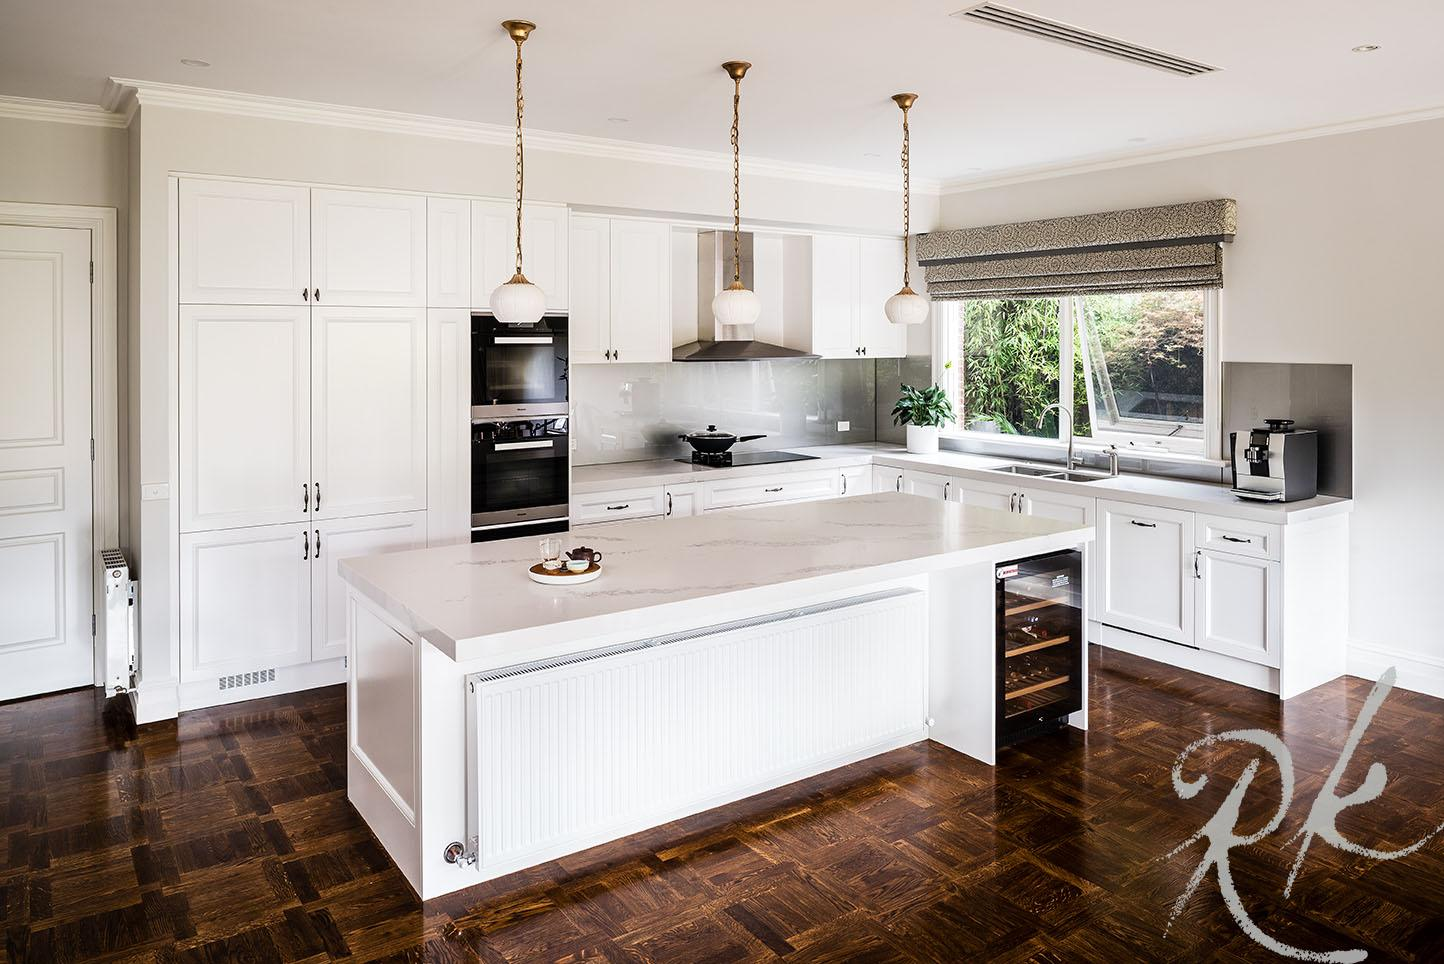 Beautiful kitchen designer inspired kitchen in Melbourne's Hawthorn East